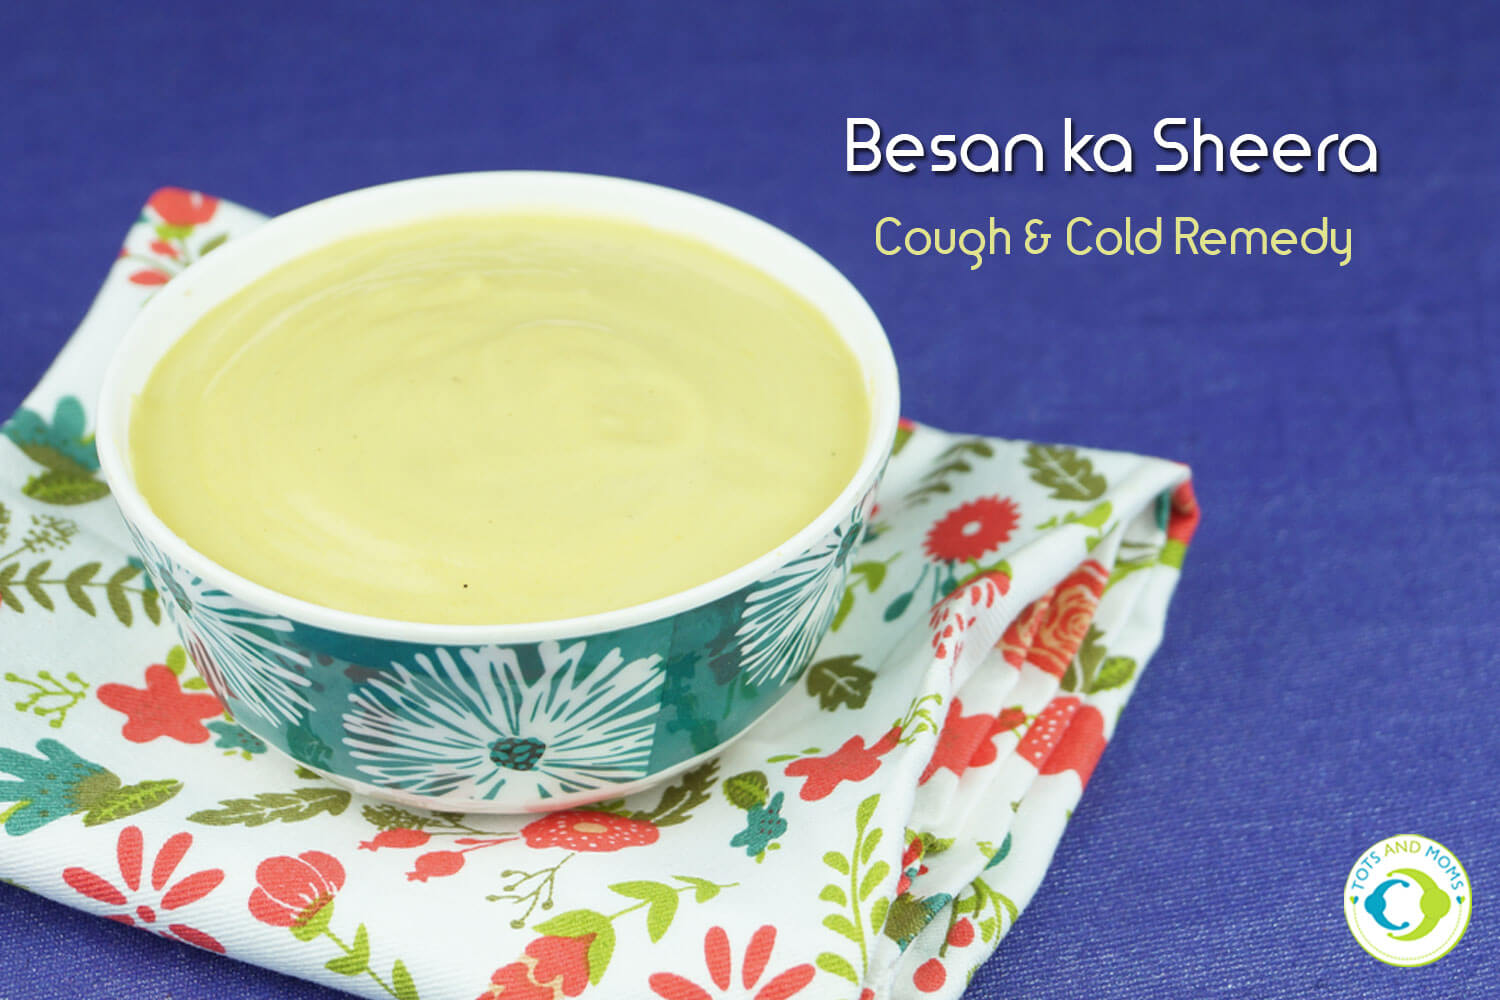 BESAN KA SHEERA for Babies, Toddlers, Kids & Family - Cough & Cold Remedykids and adults